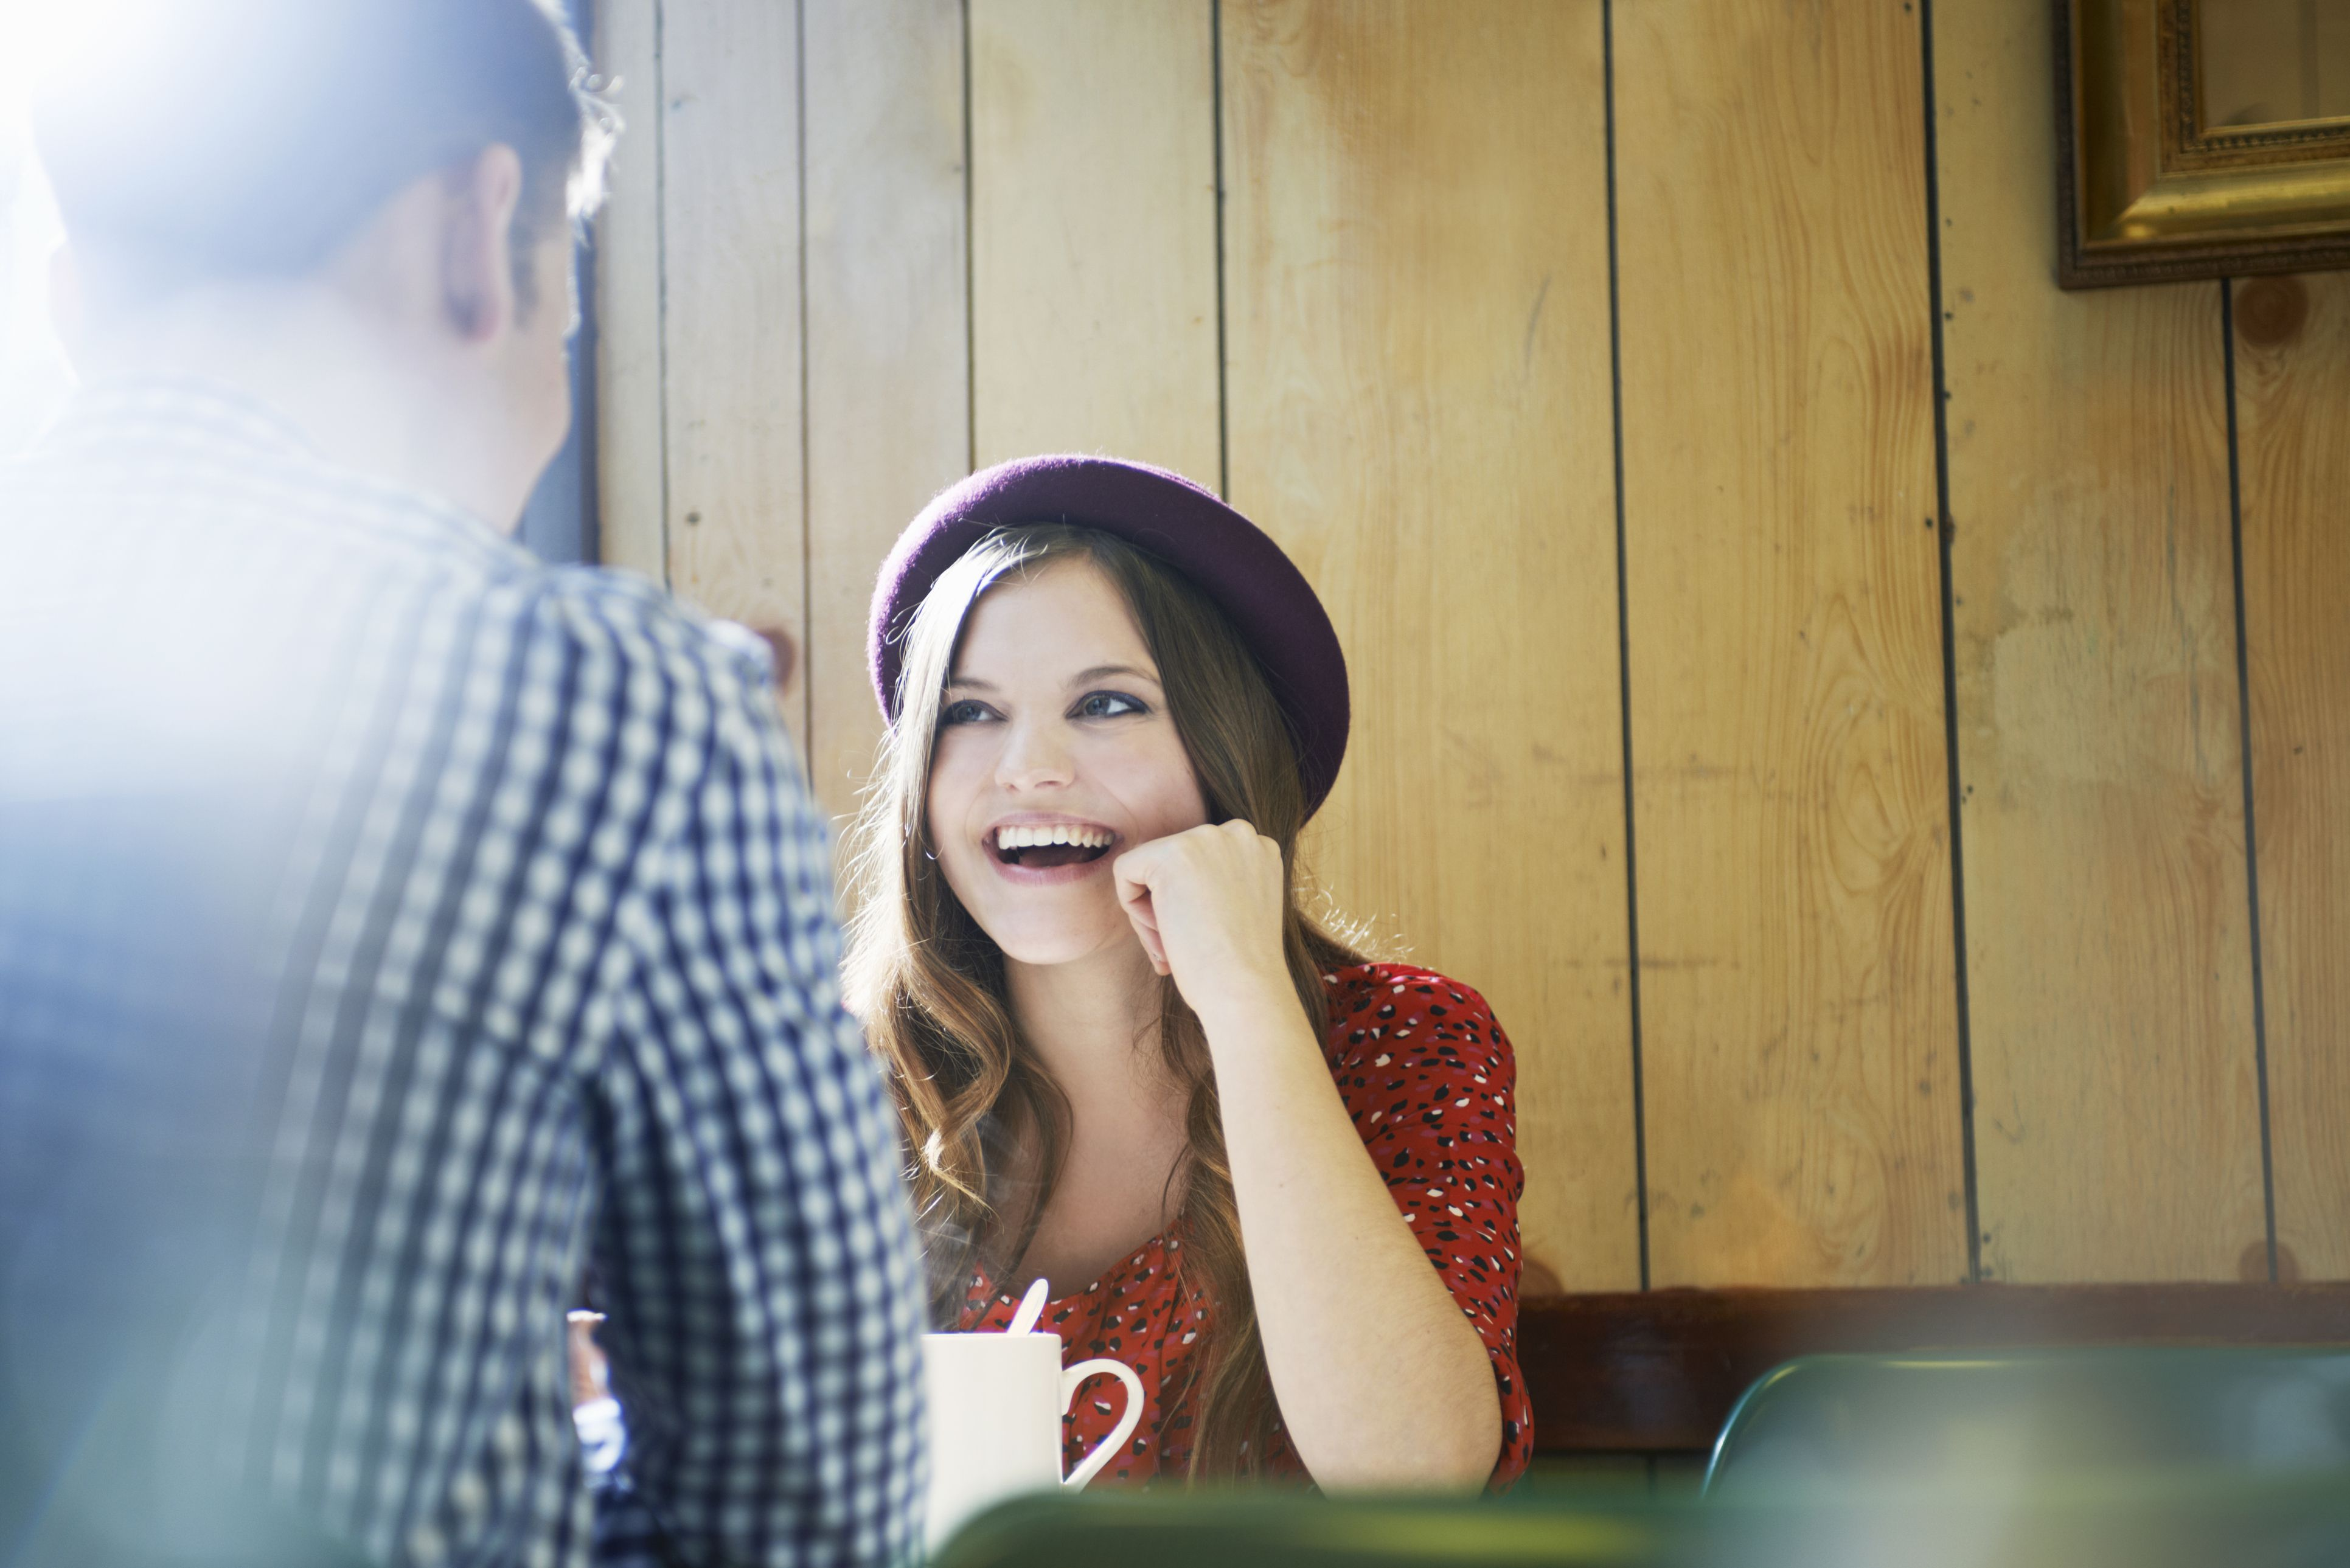 Getting to know someone questions dating woman